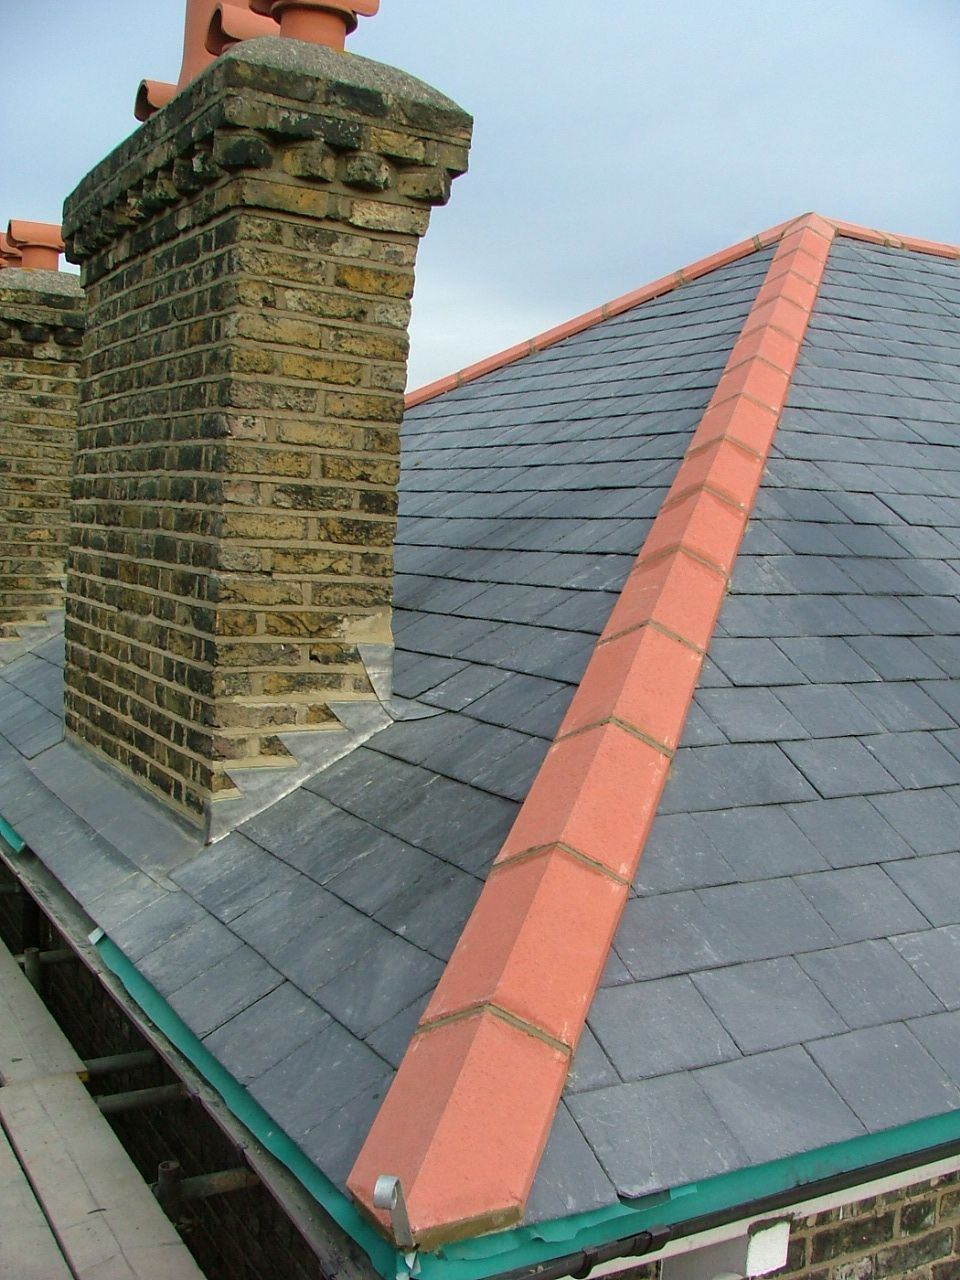 New Natural Slate Roof With Universal Hips And Ridge And New Lead Flashings  And Back Gutter